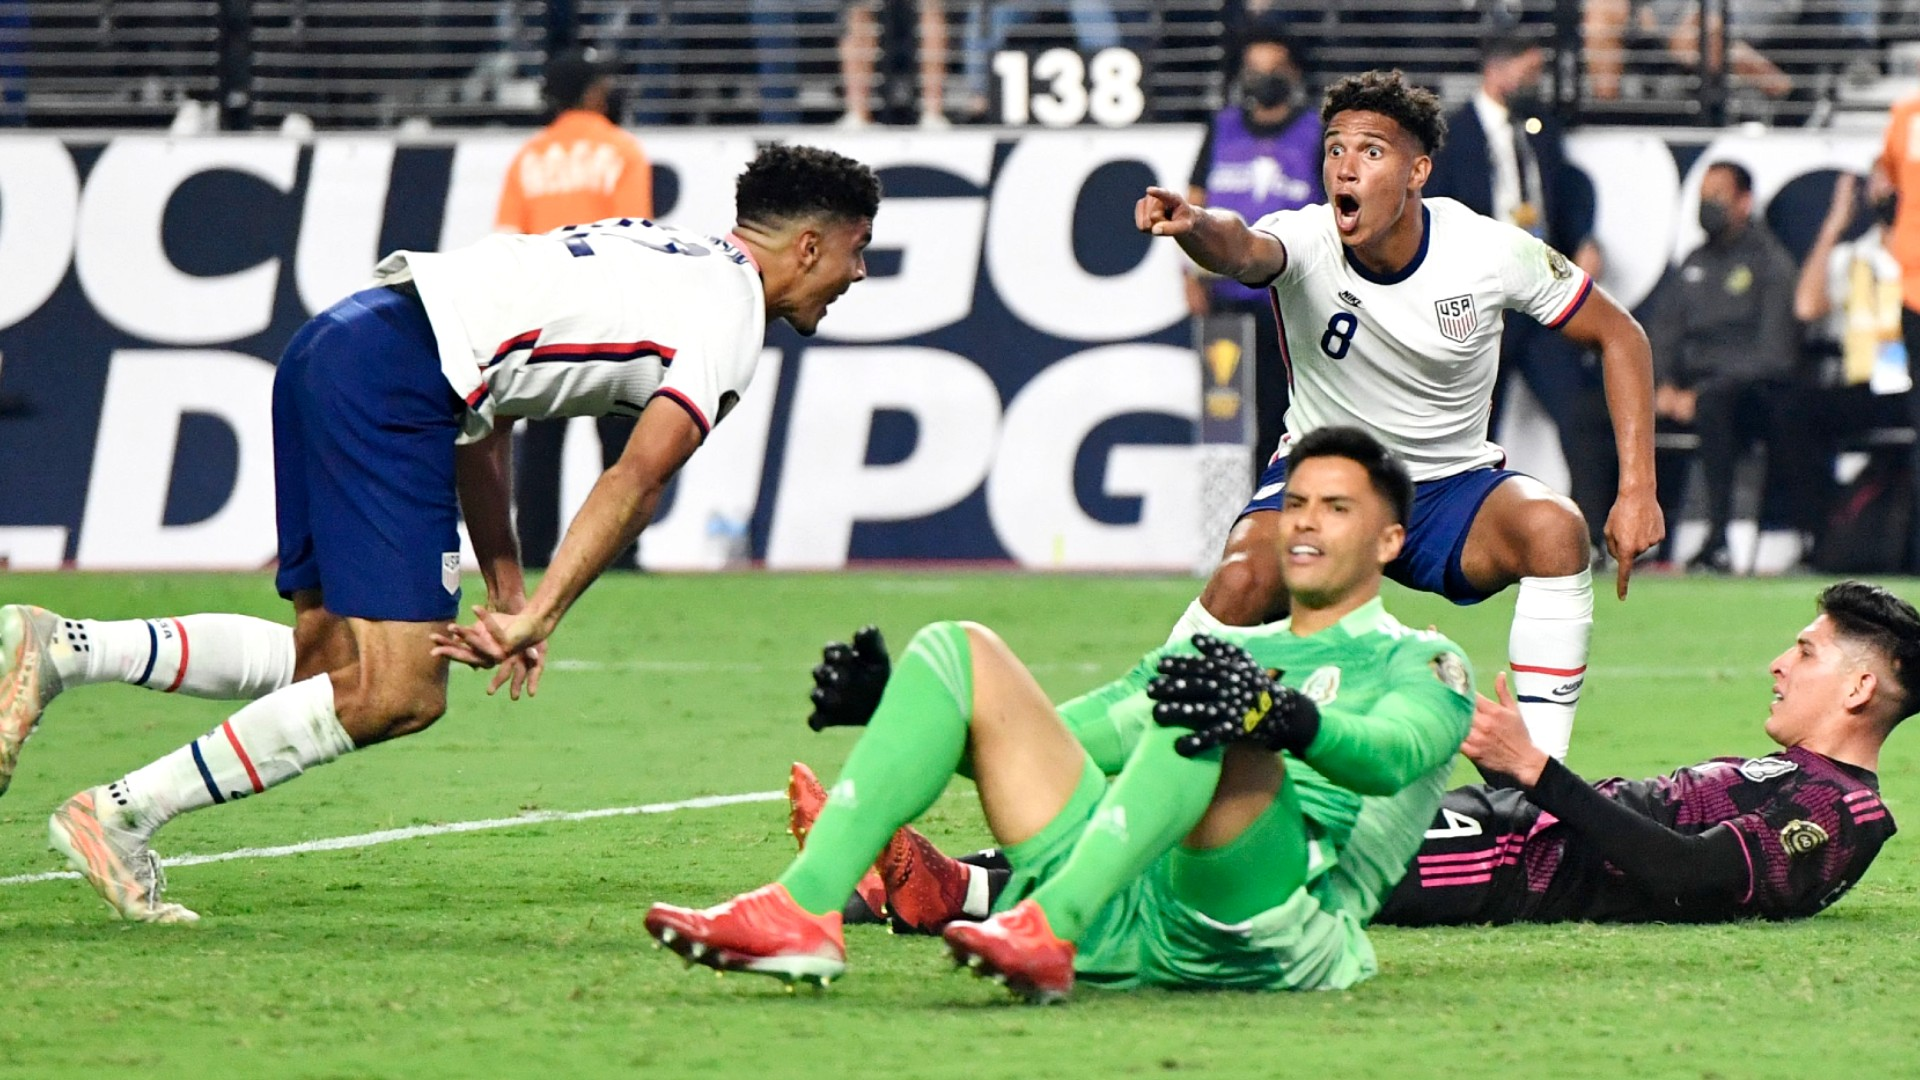 USA vs. Mexico result: USMNT wins Gold Cup on dramatic extra time goal